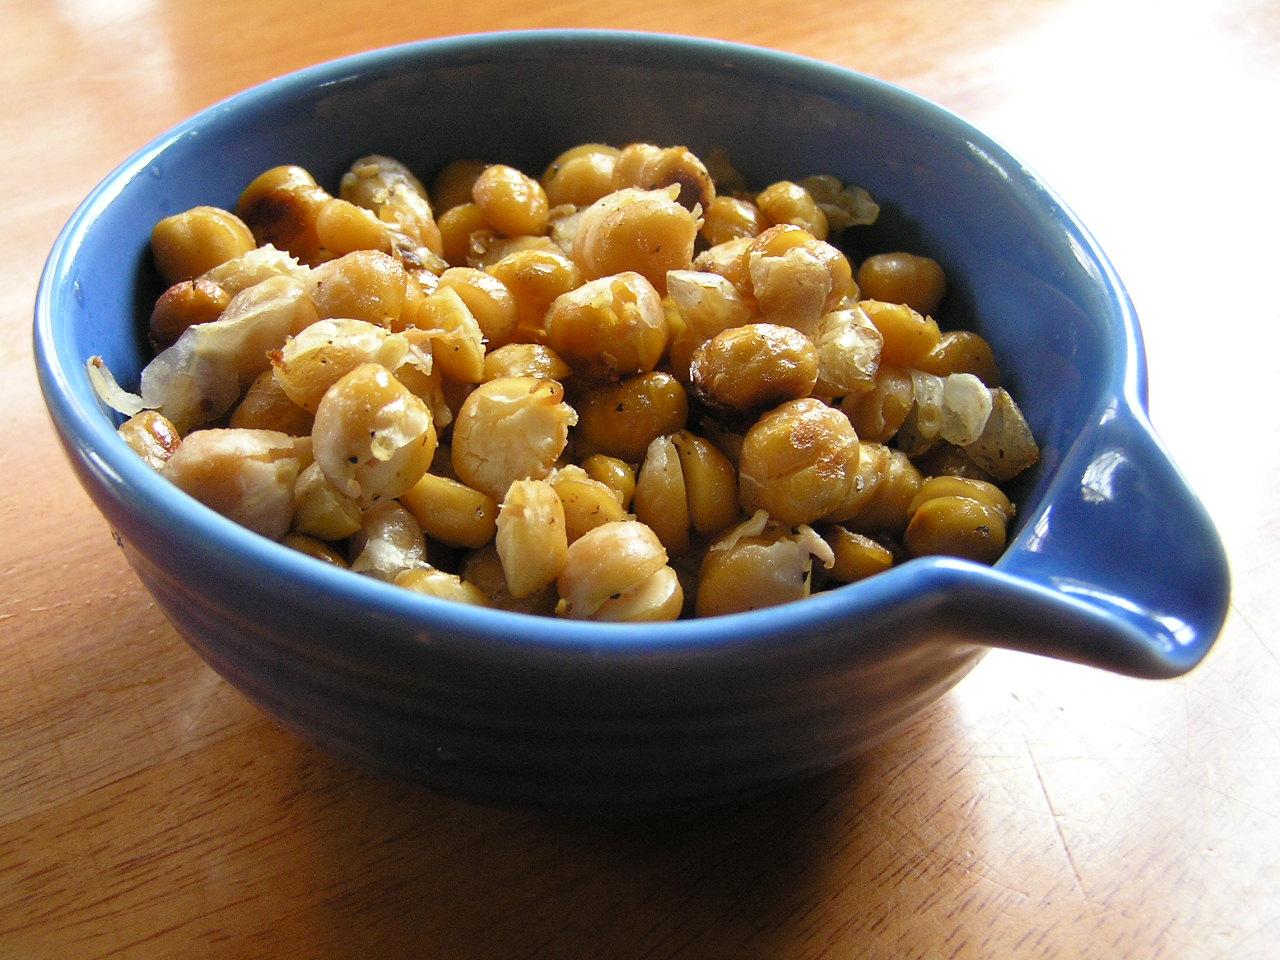 ... up some extra chickpeas to roast in the oven roasted chickpeas are